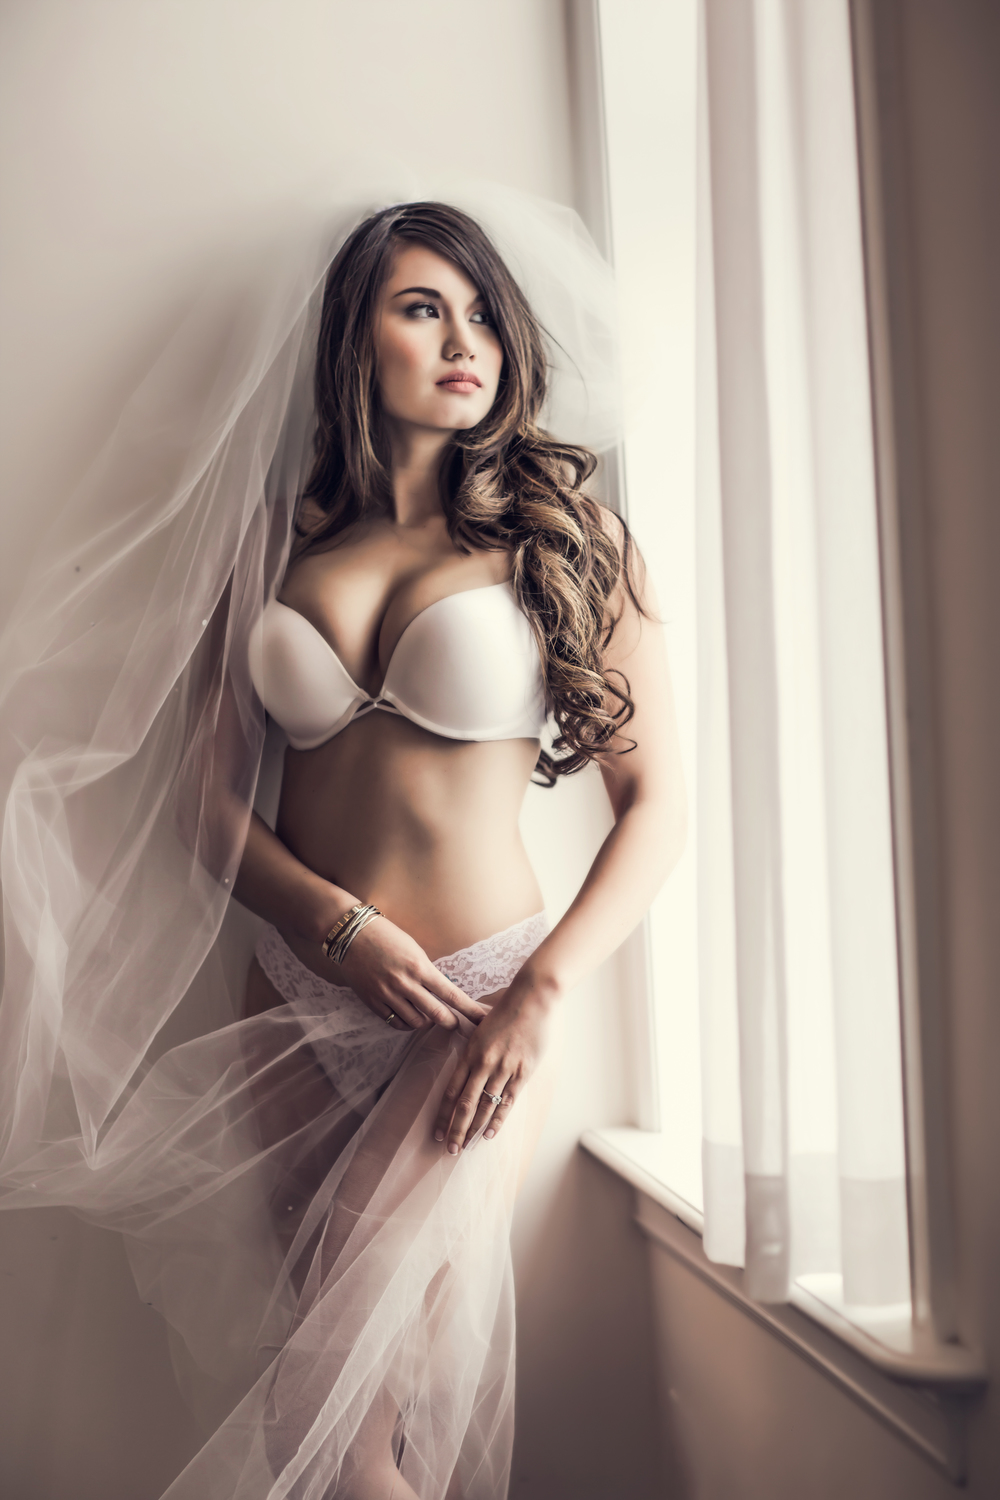 cb388469899 Soft and feminine in this classic bridal boudoir session. Our studio  provides a variety of